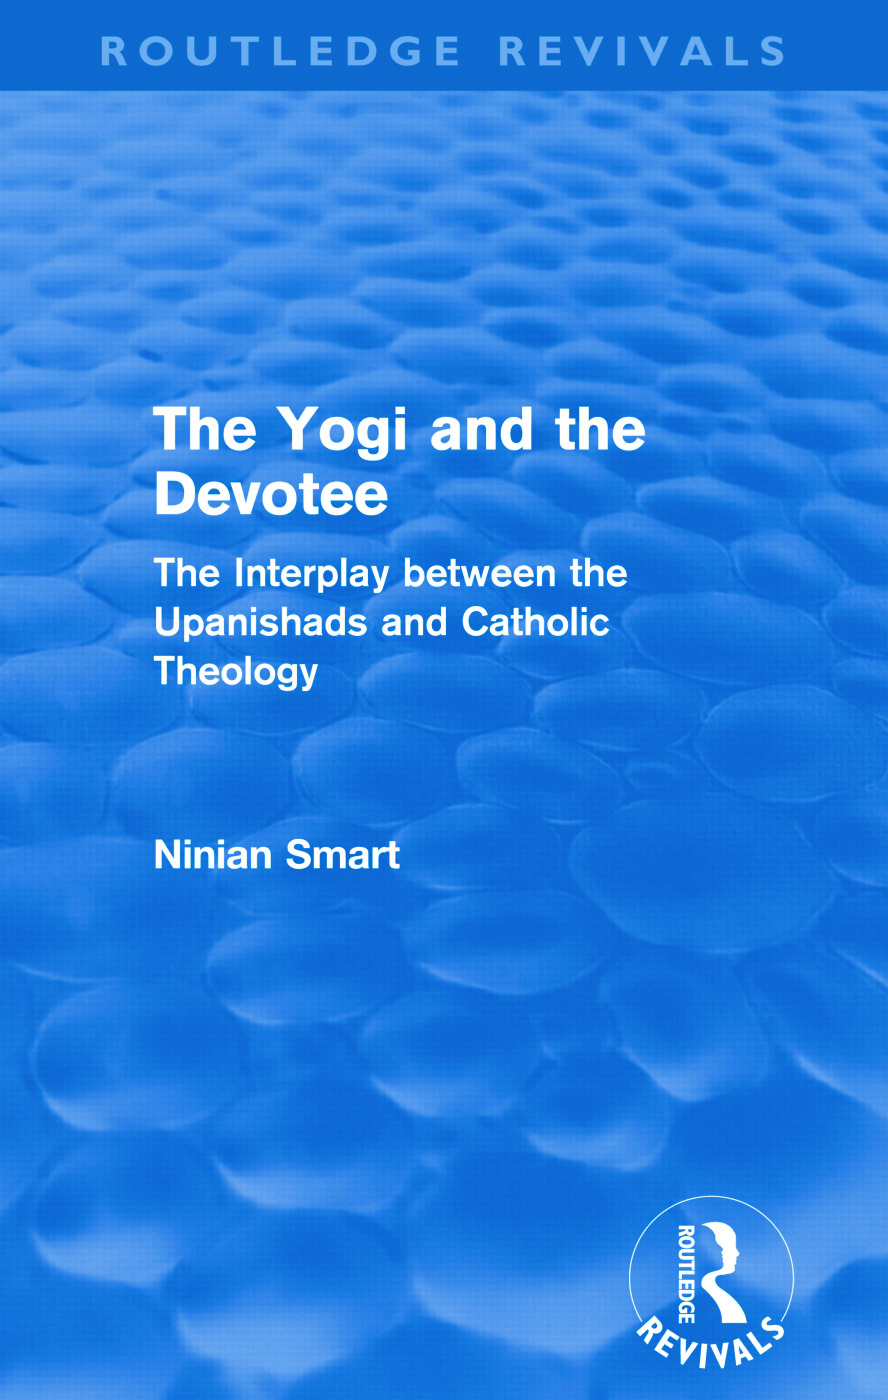 The Yogi and the Devotee (Routledge Revivals): The Interplay Between the Upanishads and Catholic Theology (Paperback) book cover